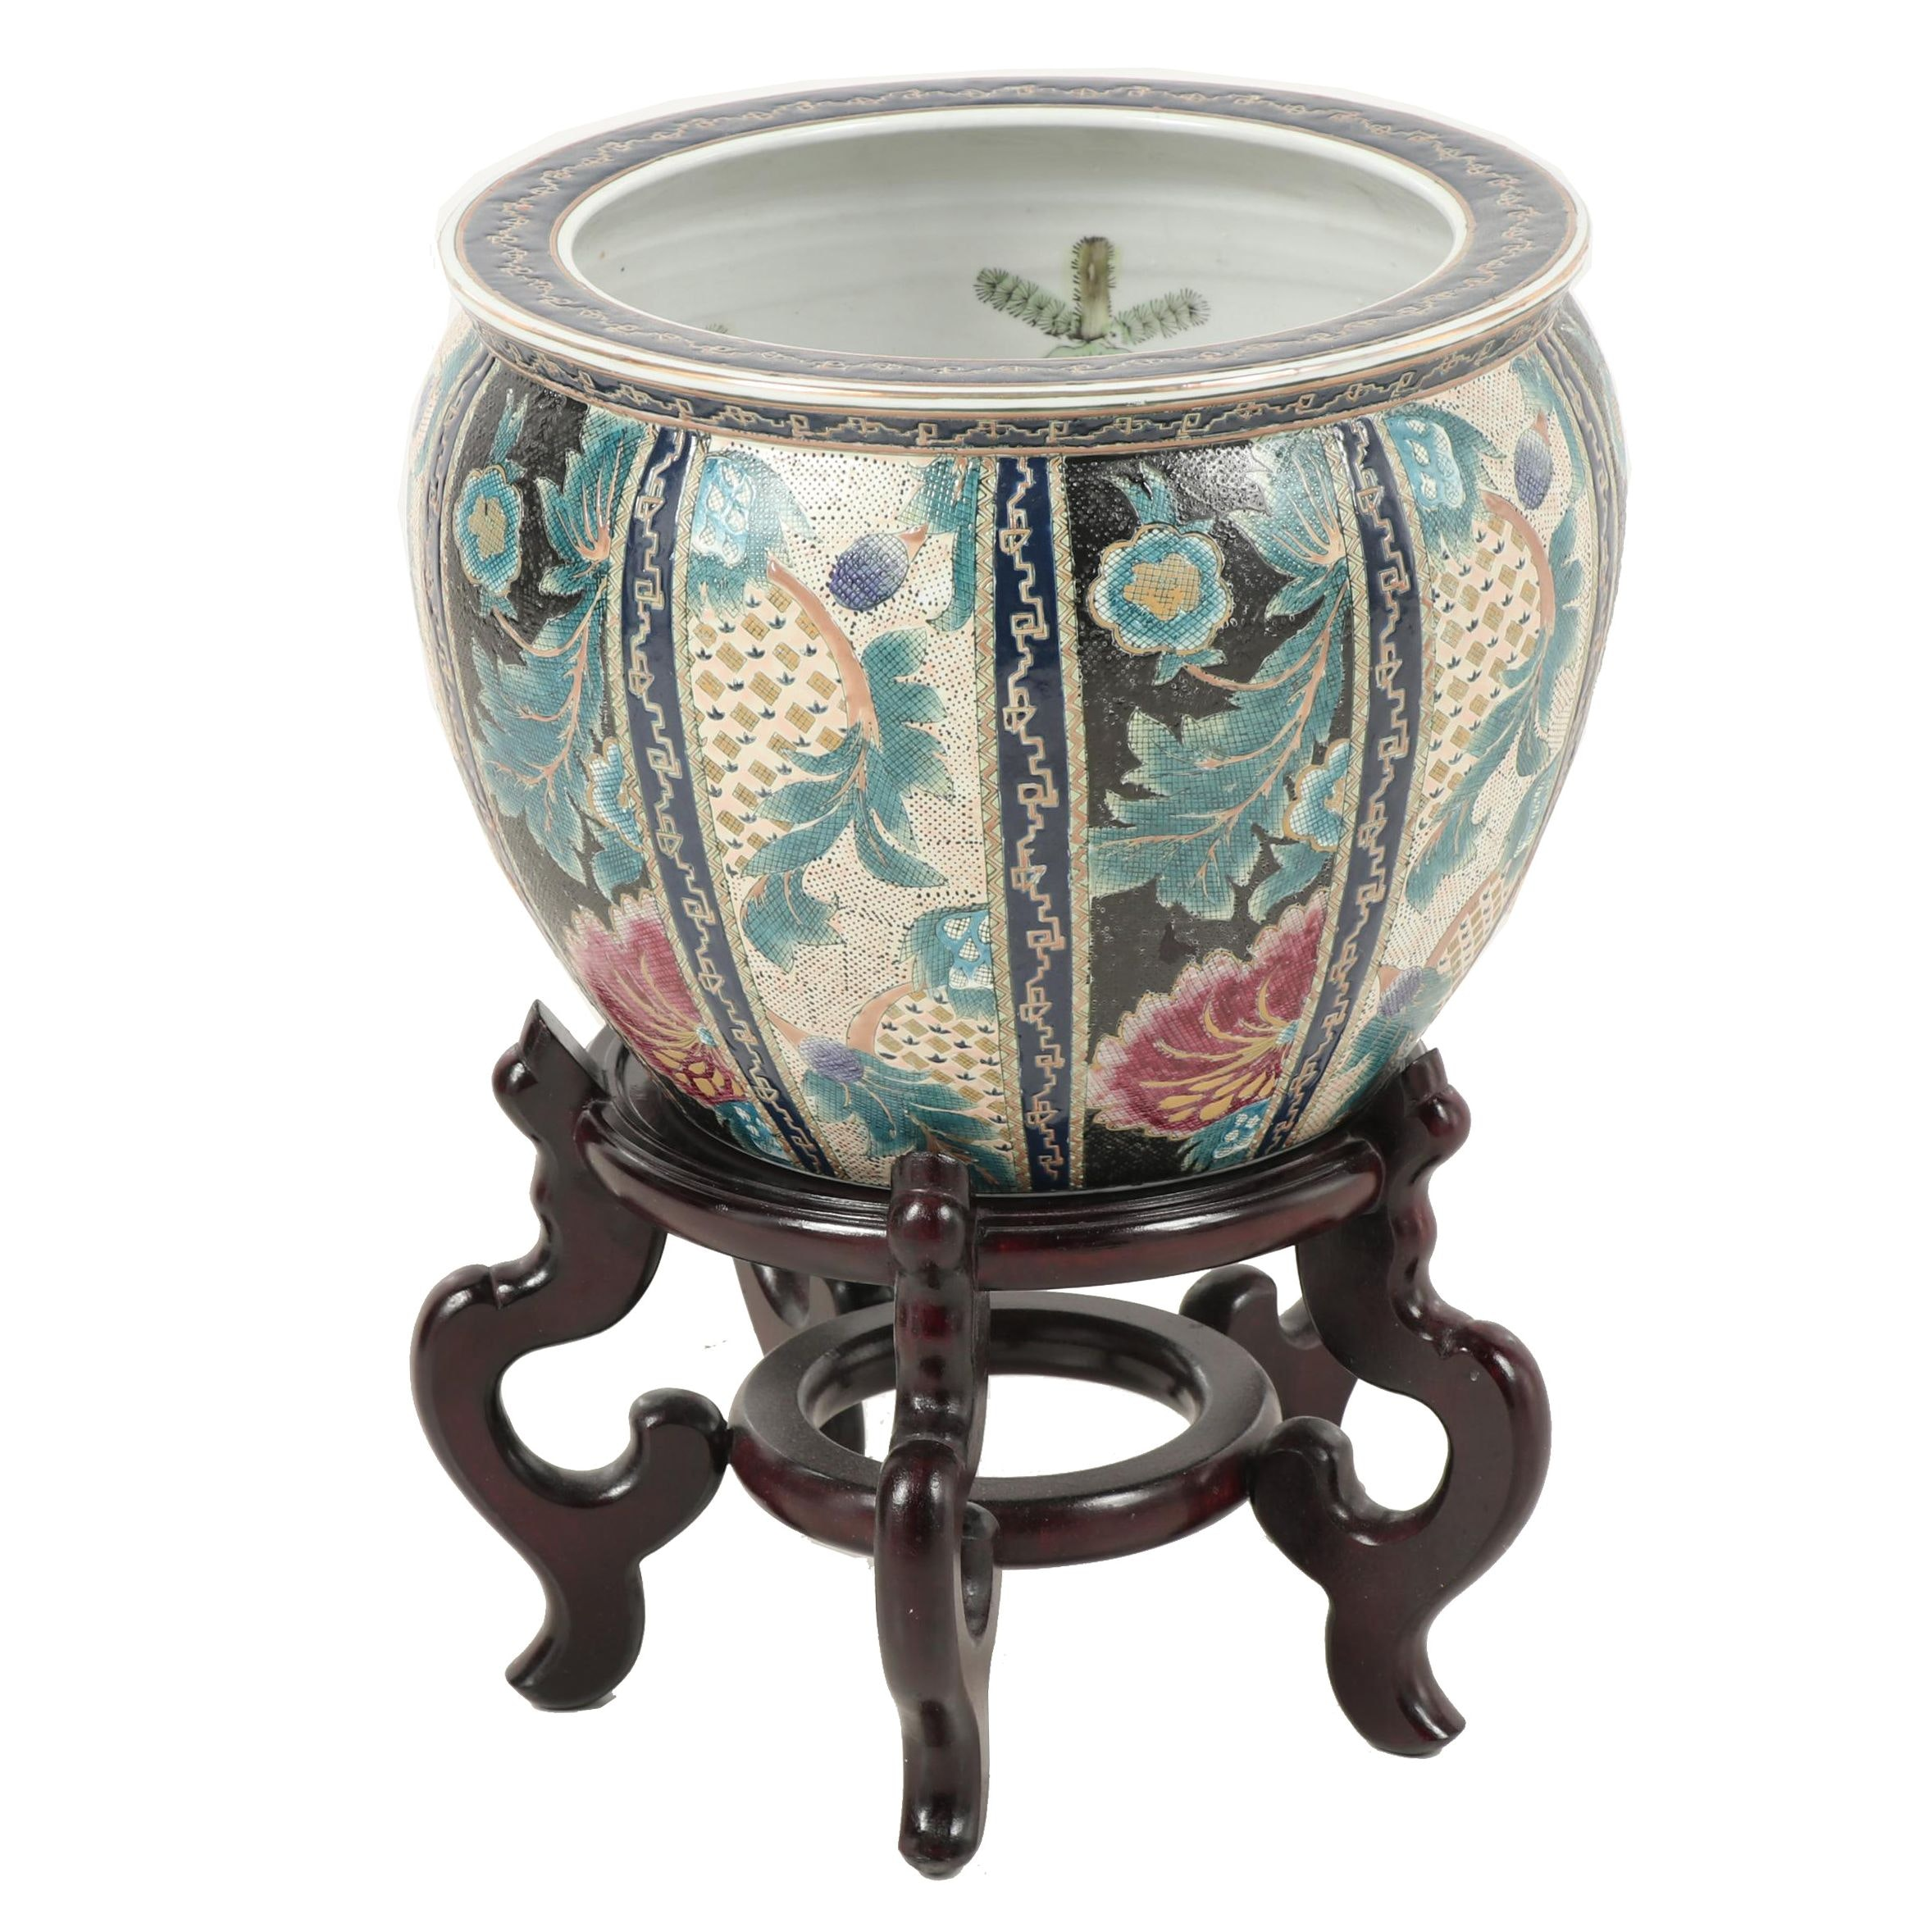 Chinese Ceramic Fishbowl Planter with Stand